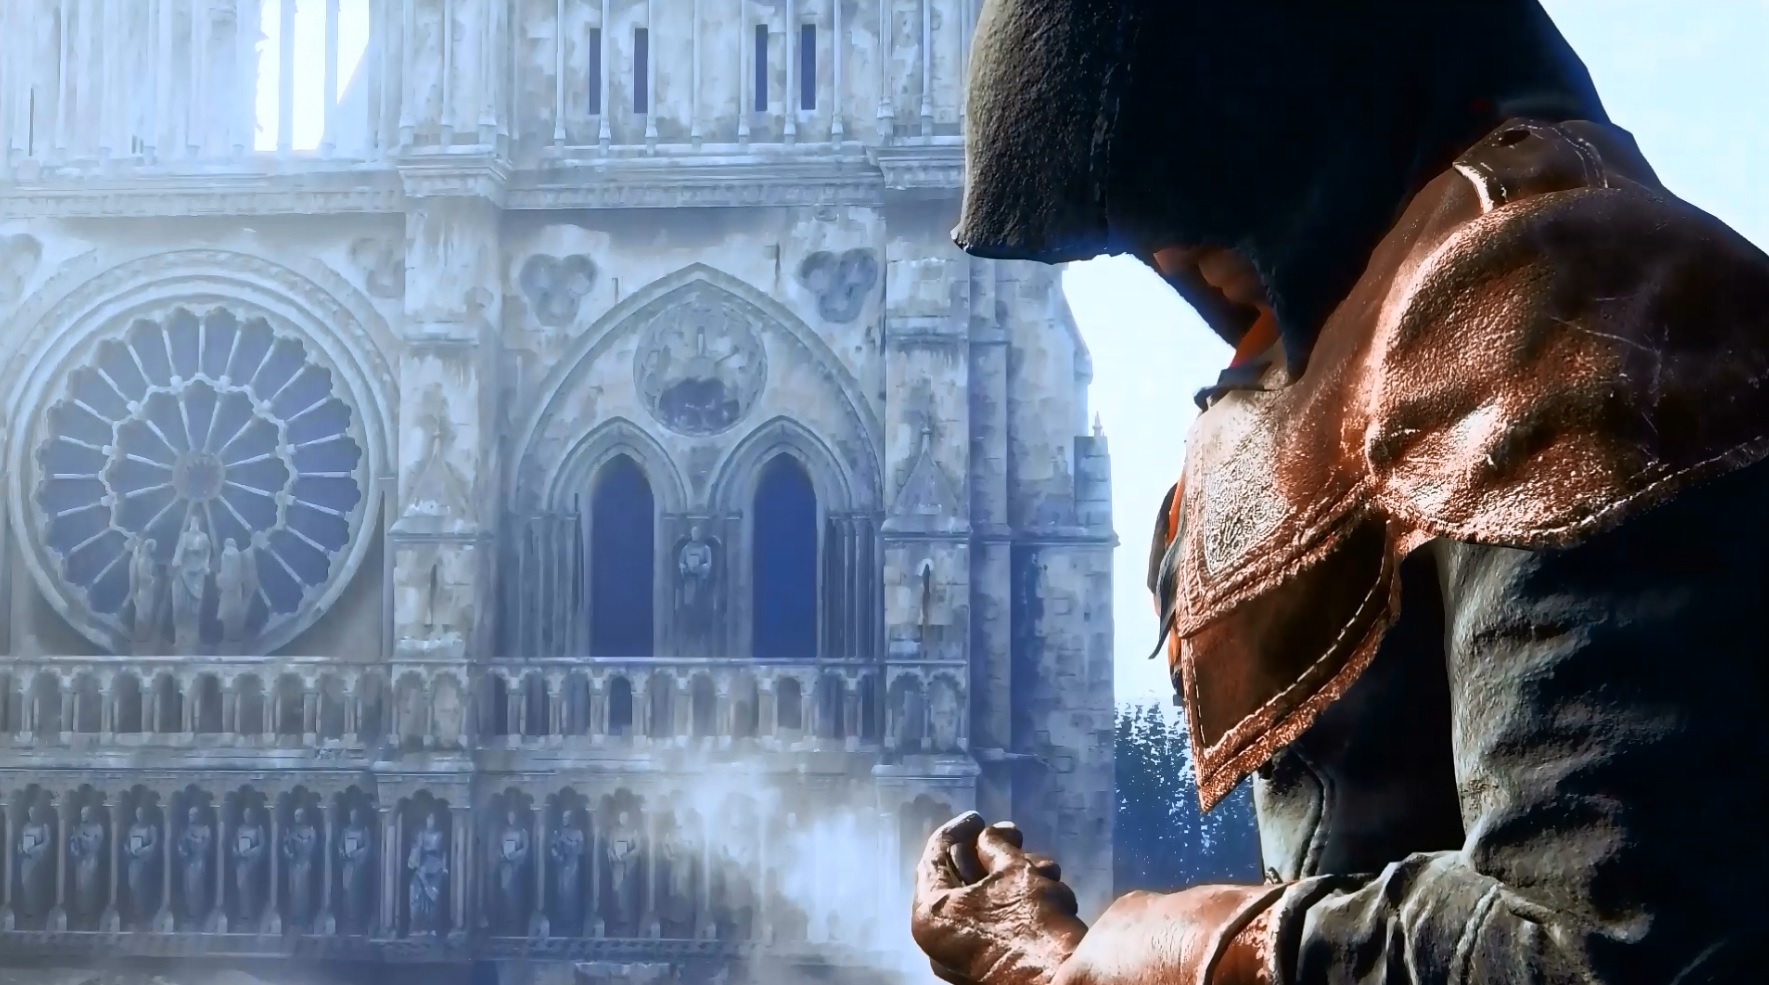 assassins creed unity glitches fixed